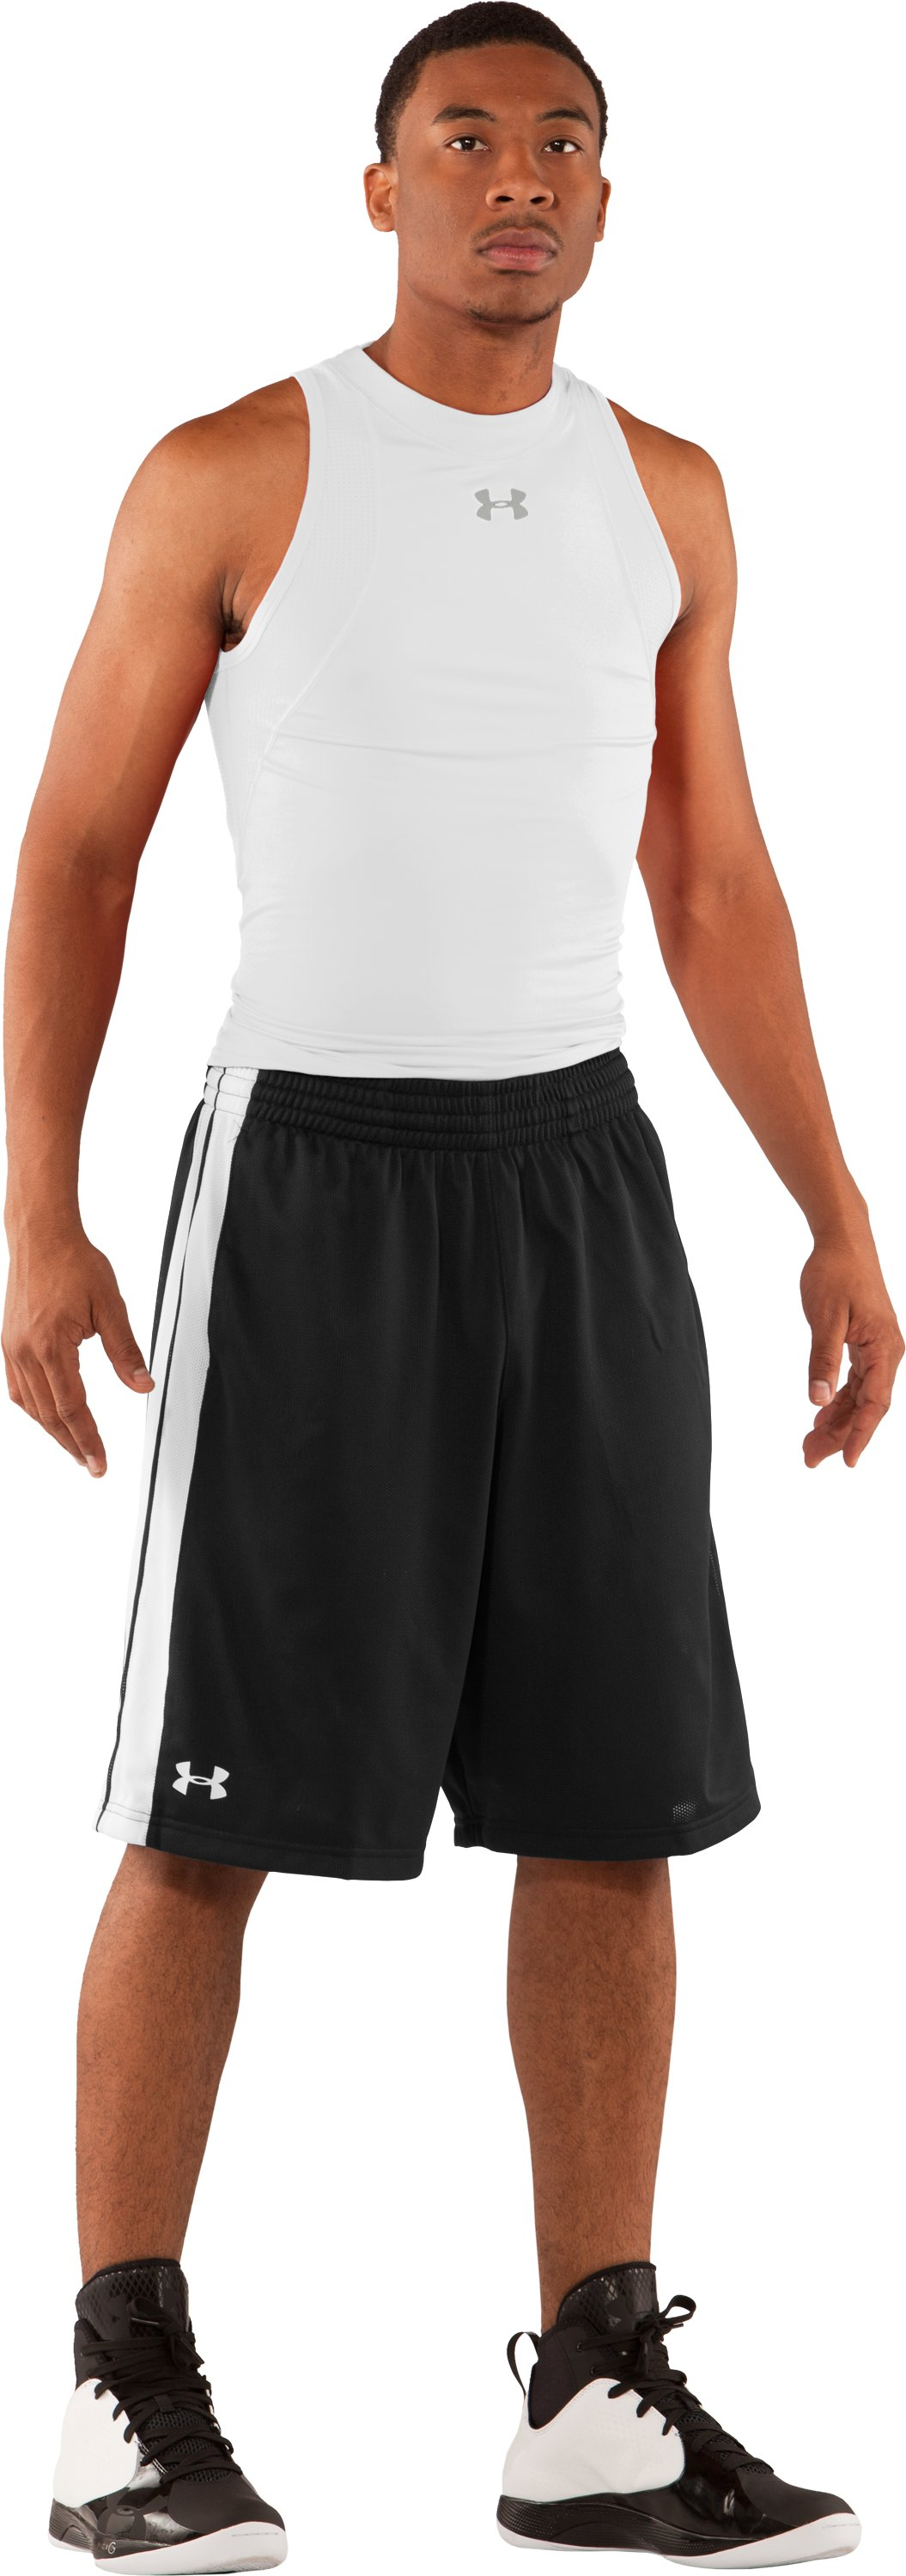 "Men's 10"" Basketball Practice Shorts, Black , Front"